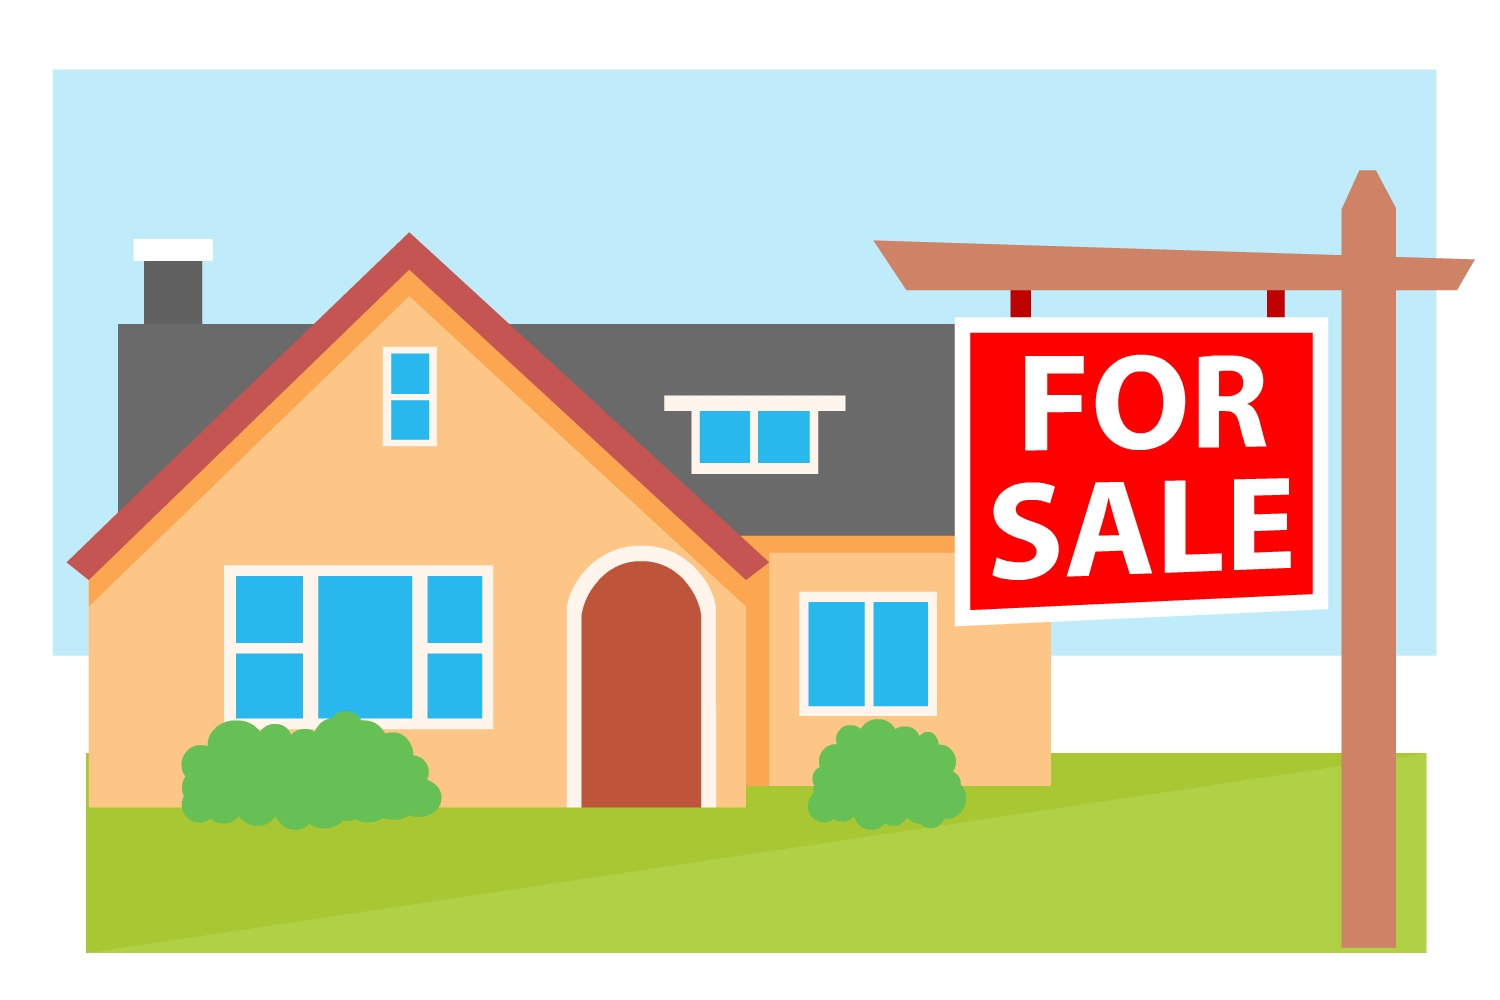 real-eatate-house-with-sign-for-sale-clipart.jpg